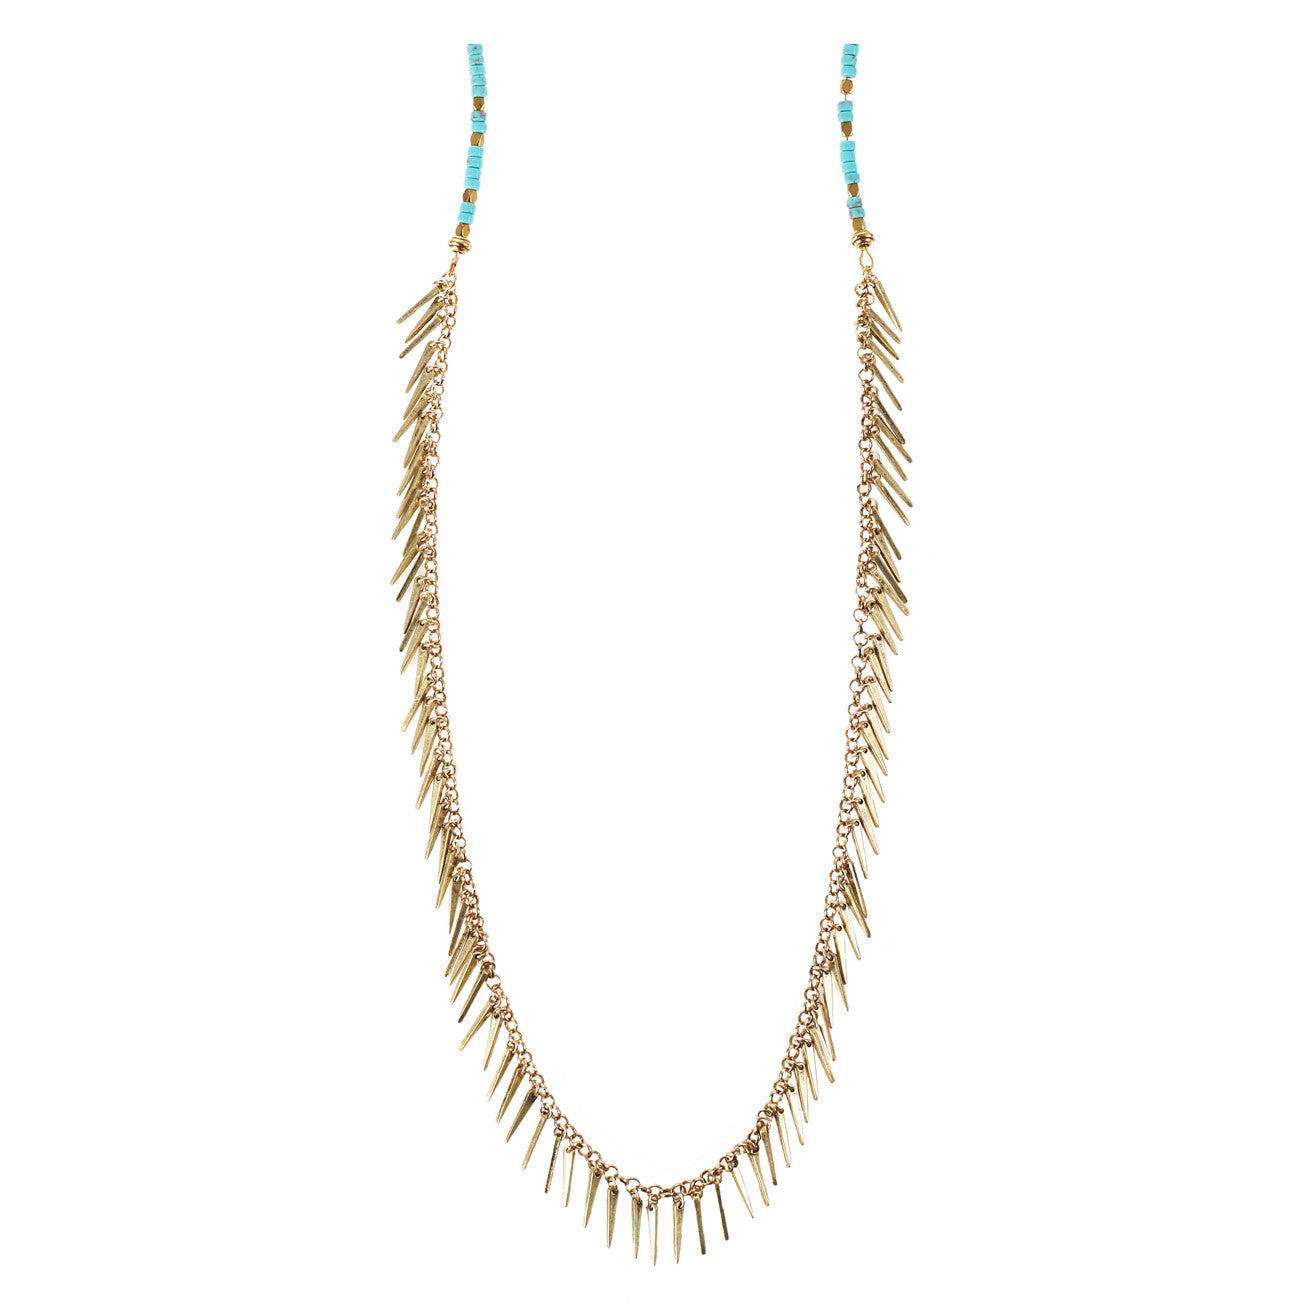 Palm Rope in Gold and Turquoise by Jenny Bird